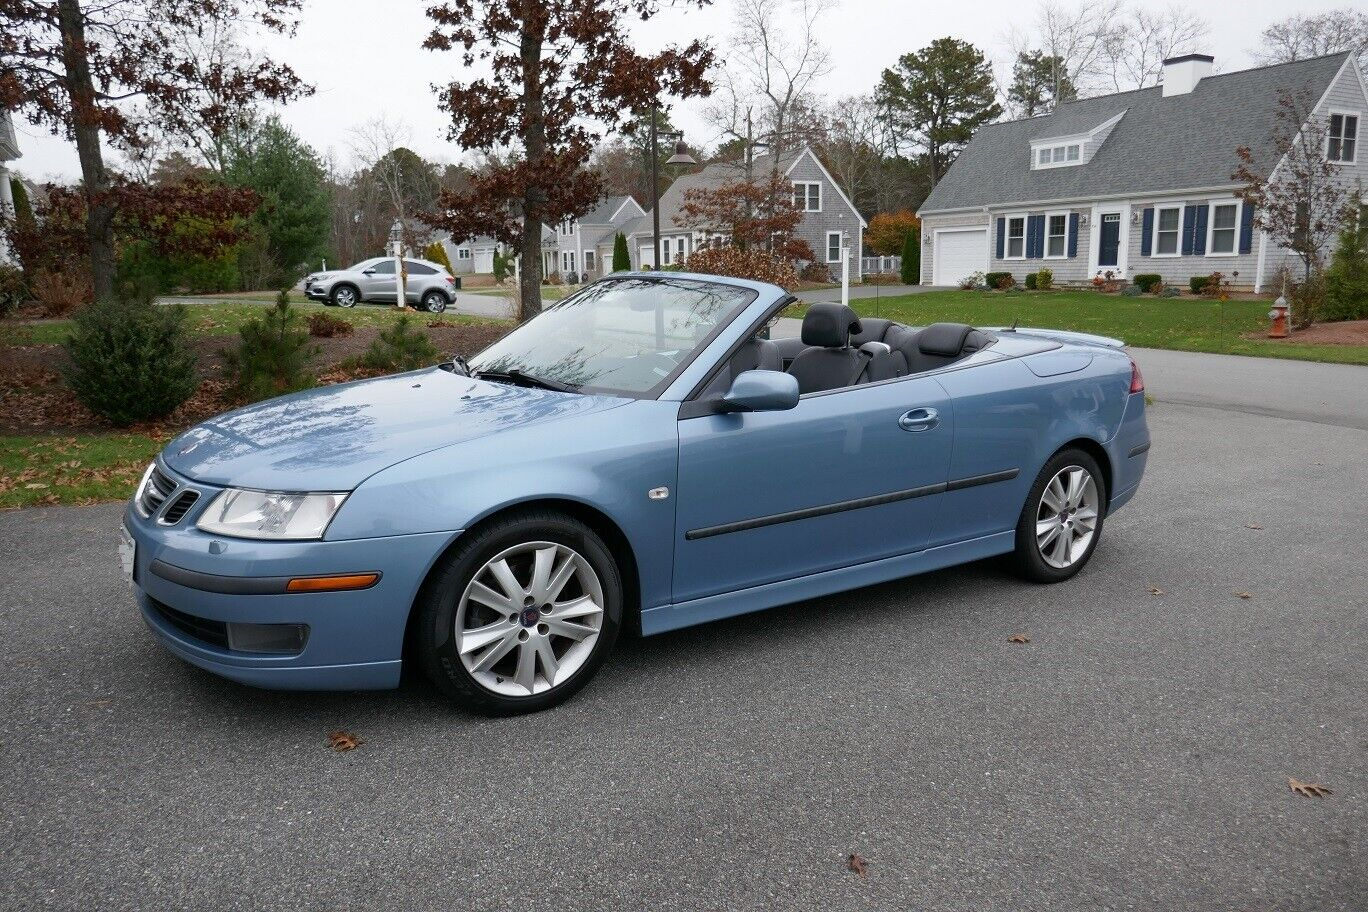 2007 Saab 9-3  2007 SAAB 9-3 turbo convertible - 6-speed manual - relisted as make an offer